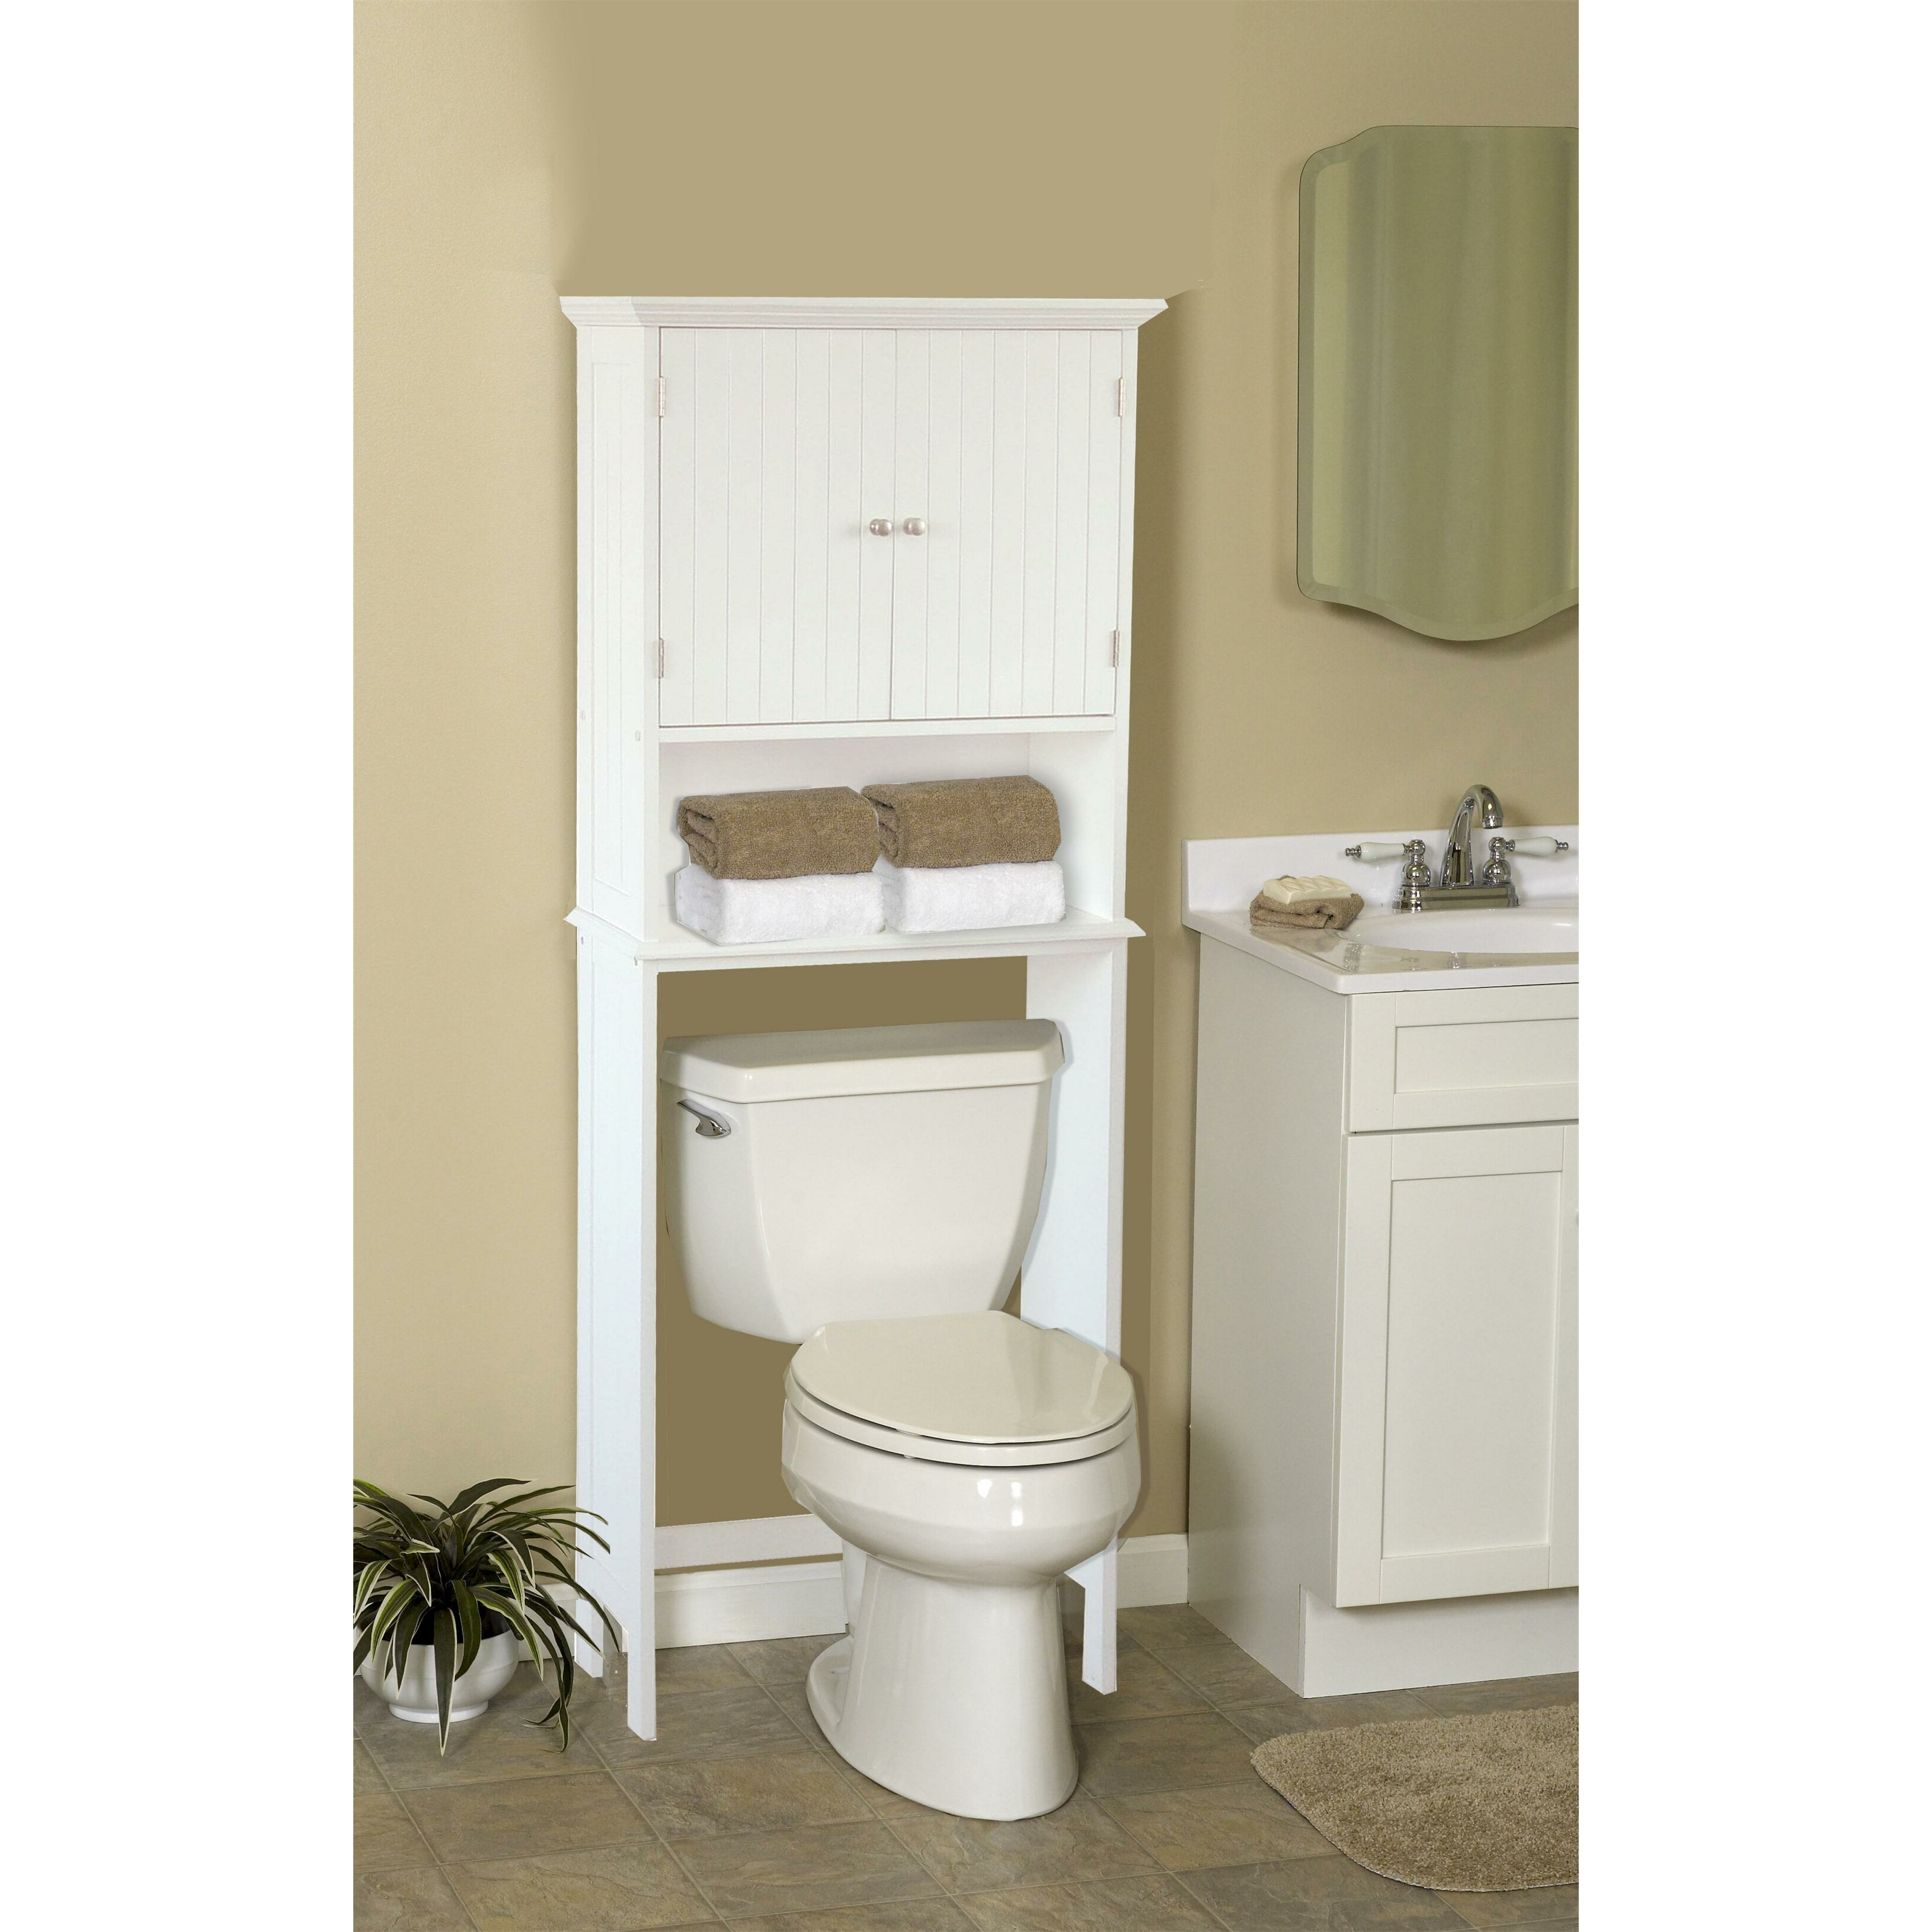 for paper furniture storage reviews wayfair marvellous of cabinet com page hampton skalpingclass roll wooden standing over pdp basics co white uk walmart holder toilet the bathroom tall free